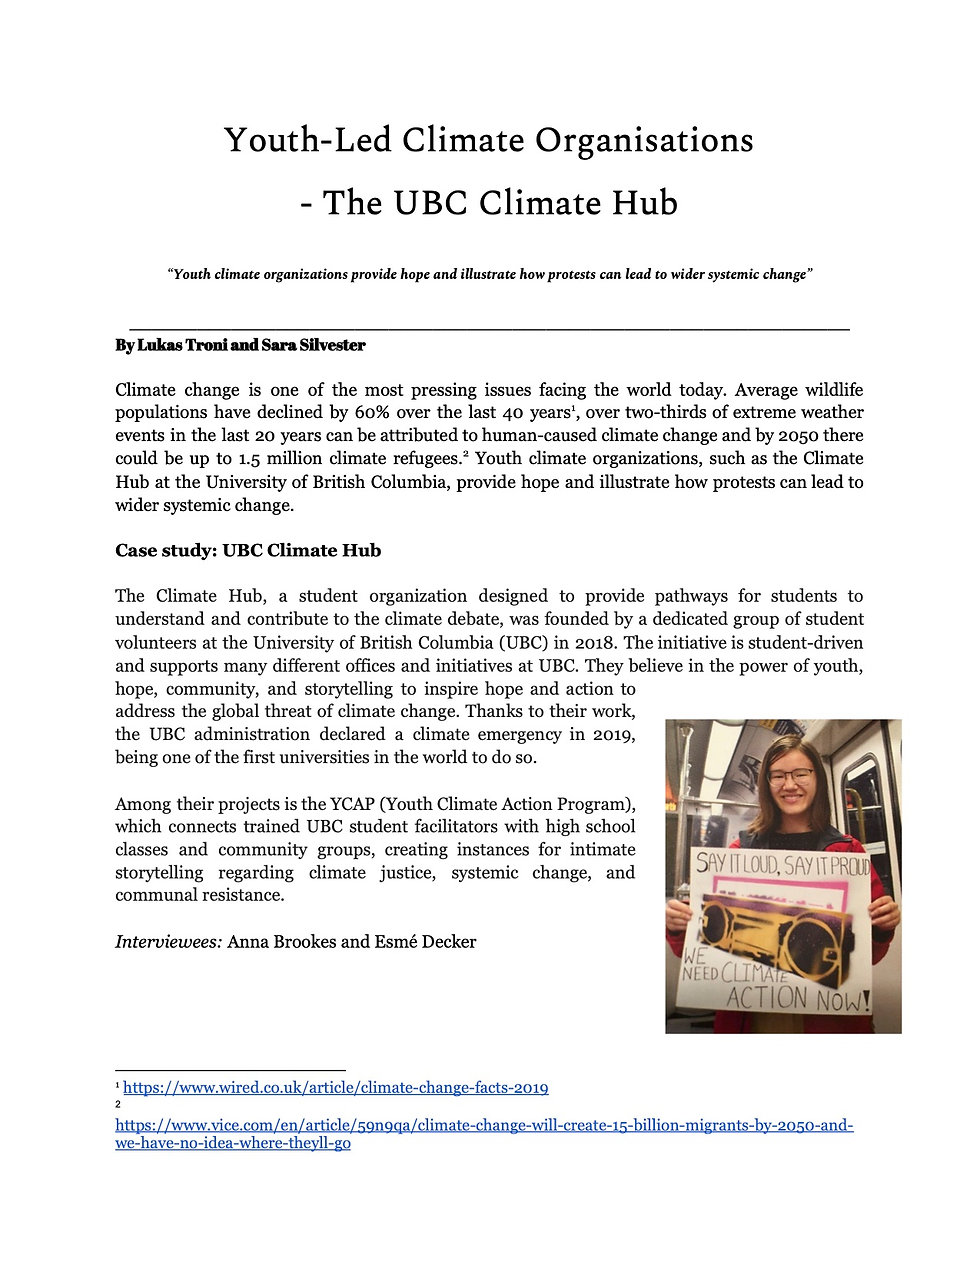 Youth-Led Climate Organisations_Sara and